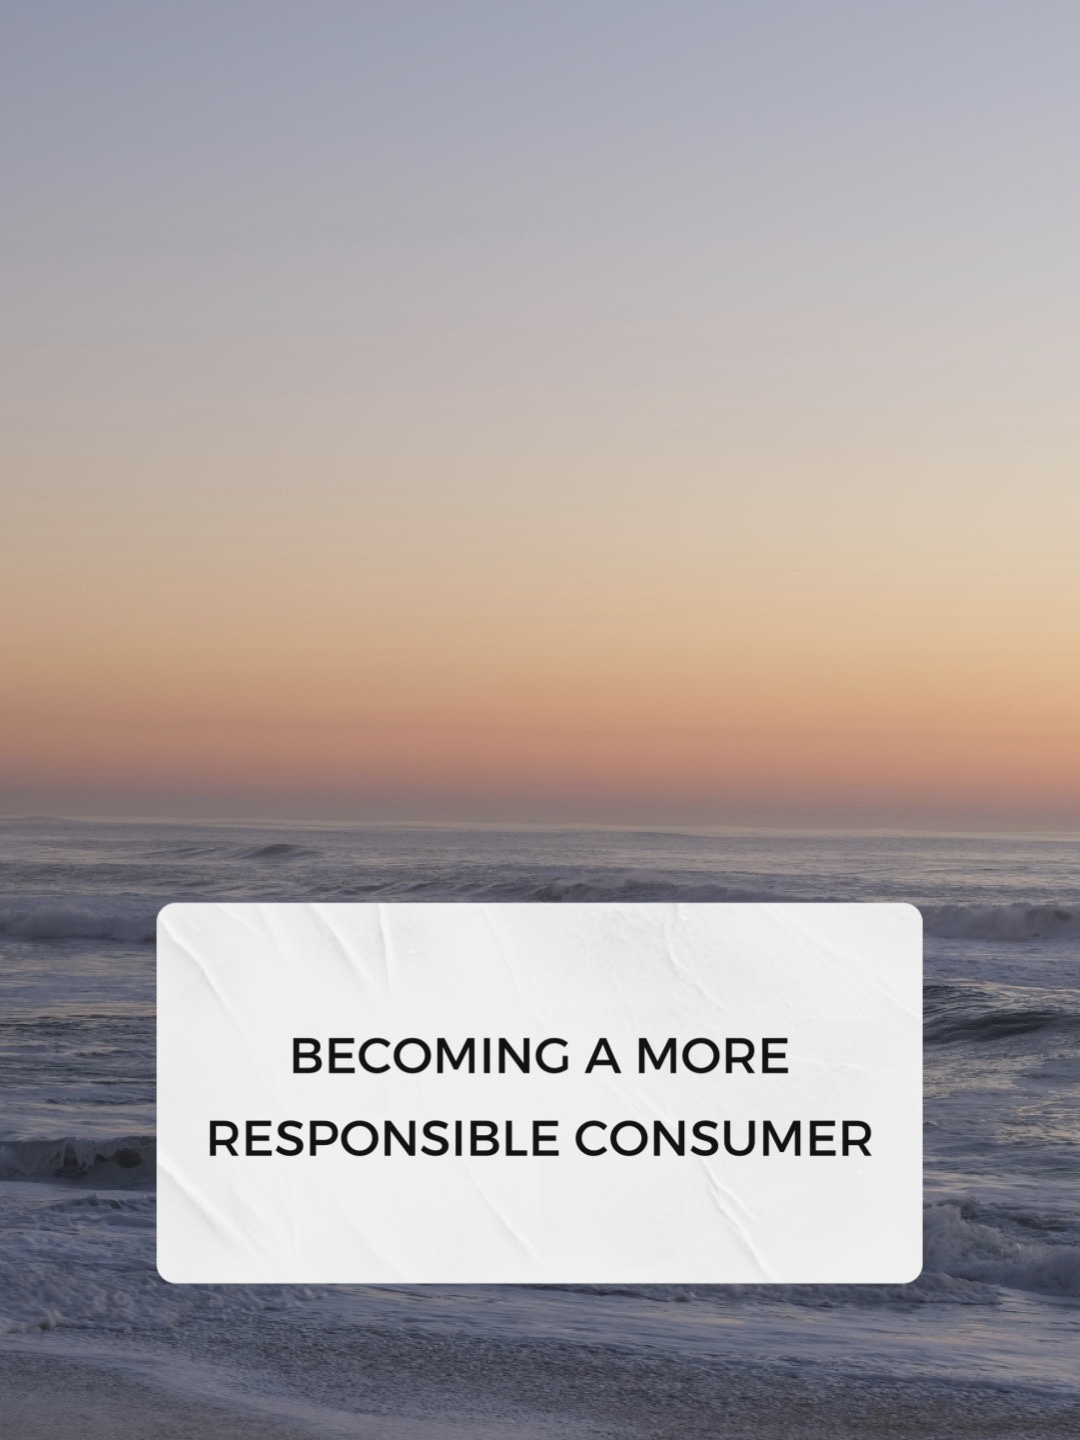 Becoming a more responsible consumer